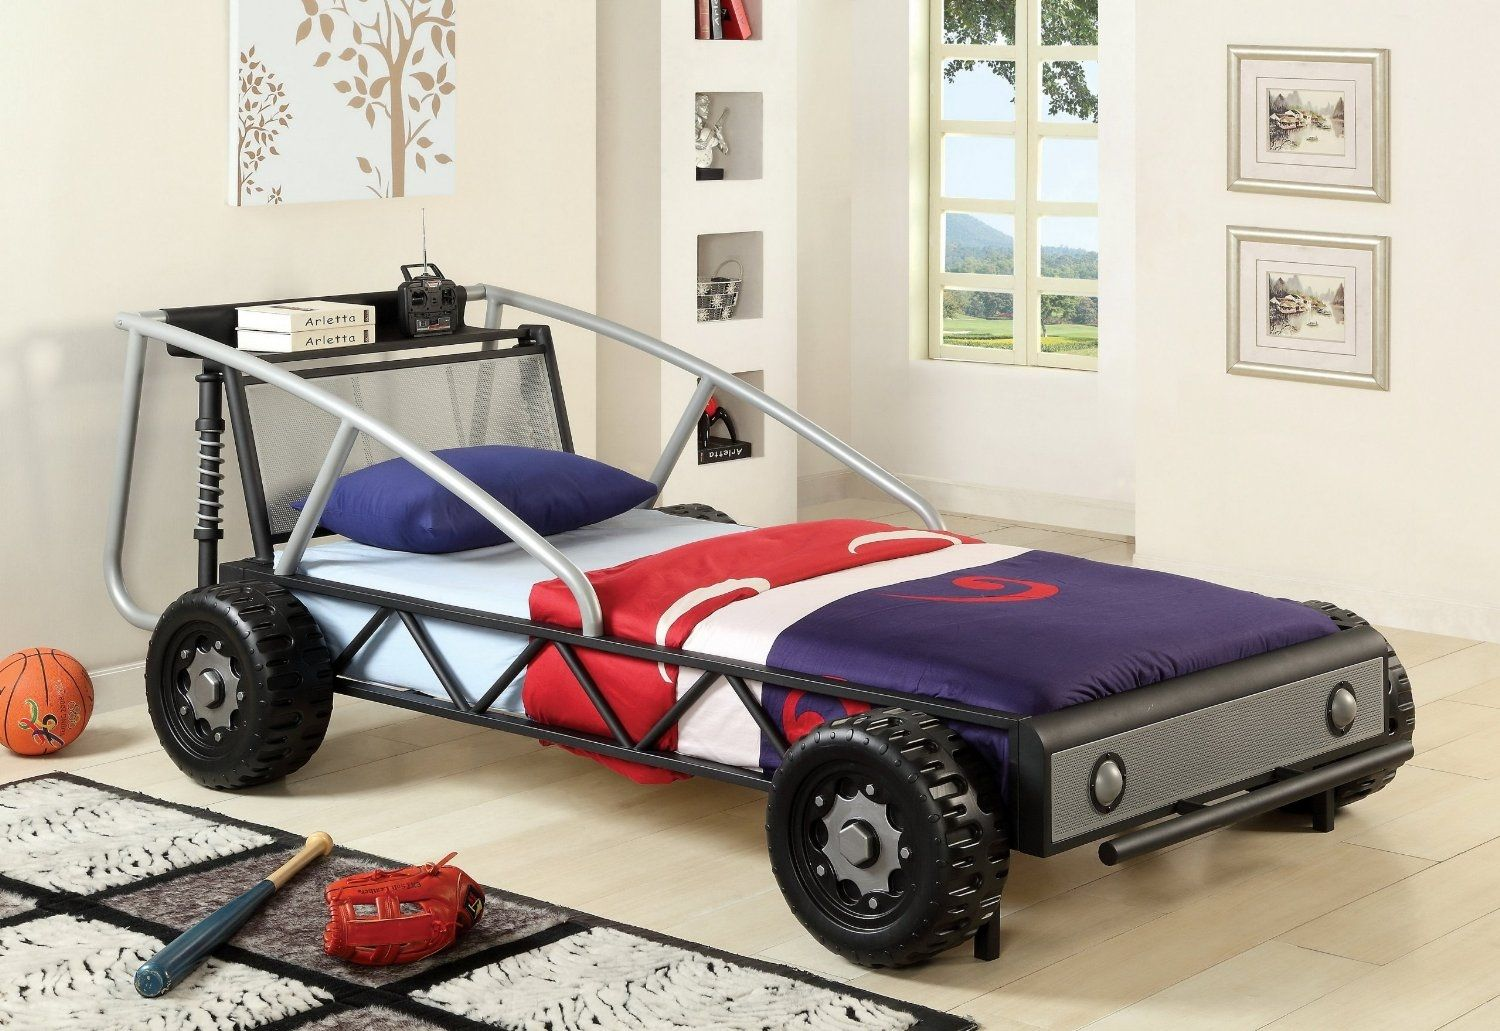 les 25 meilleures id es de la cat gorie cool beds for boys sur pinterest lits pour petites. Black Bedroom Furniture Sets. Home Design Ideas